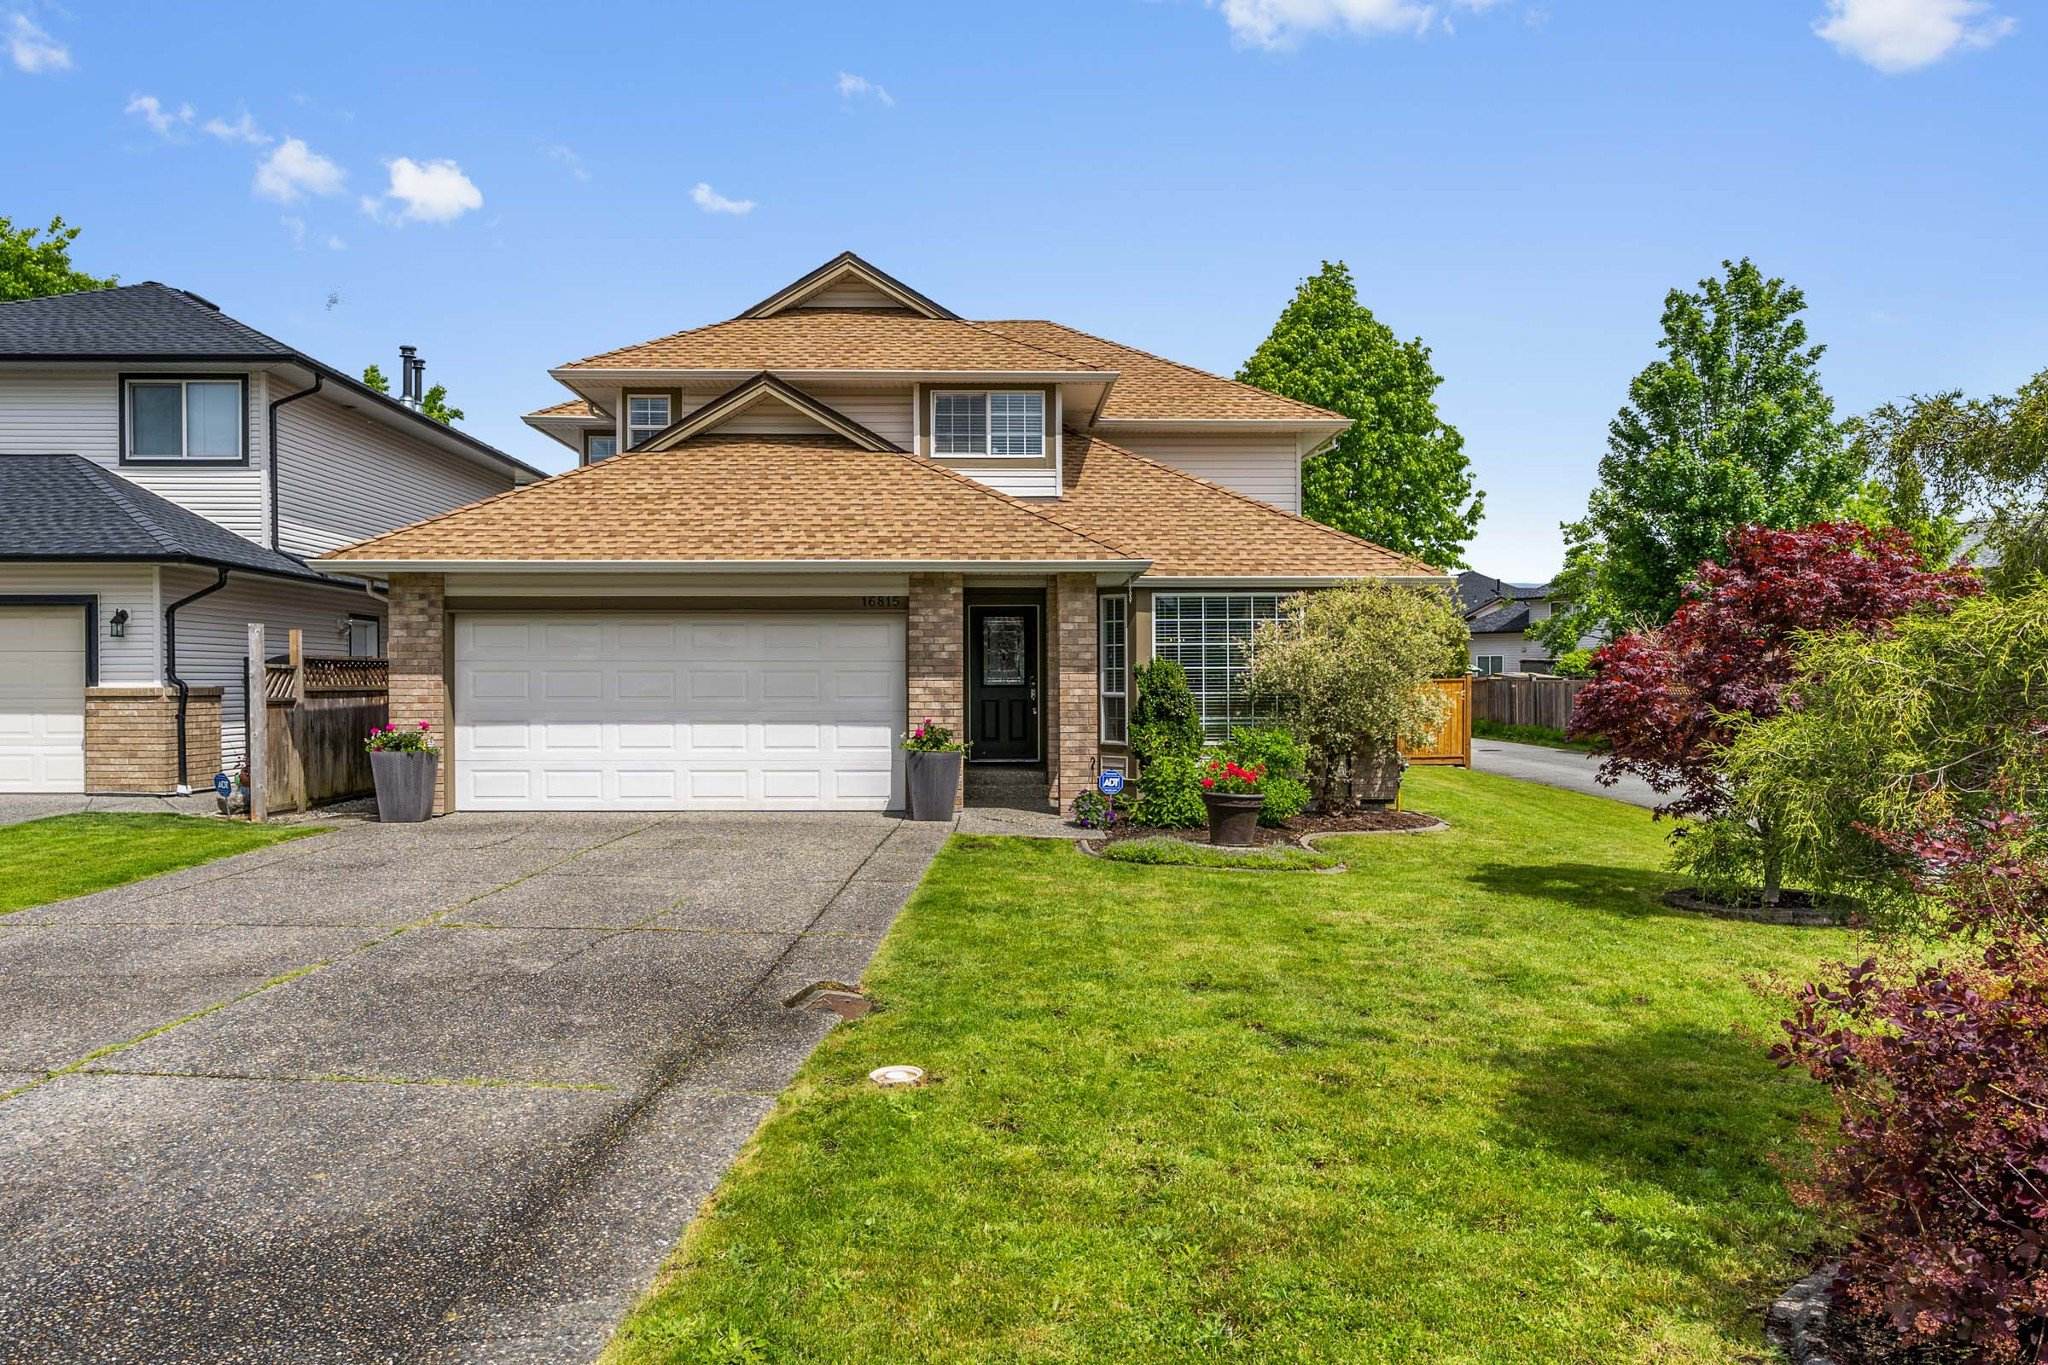 Main Photo: 16815 61 Avenue in Surrey: Cloverdale BC House for sale (Cloverdale)  : MLS®# R2457968